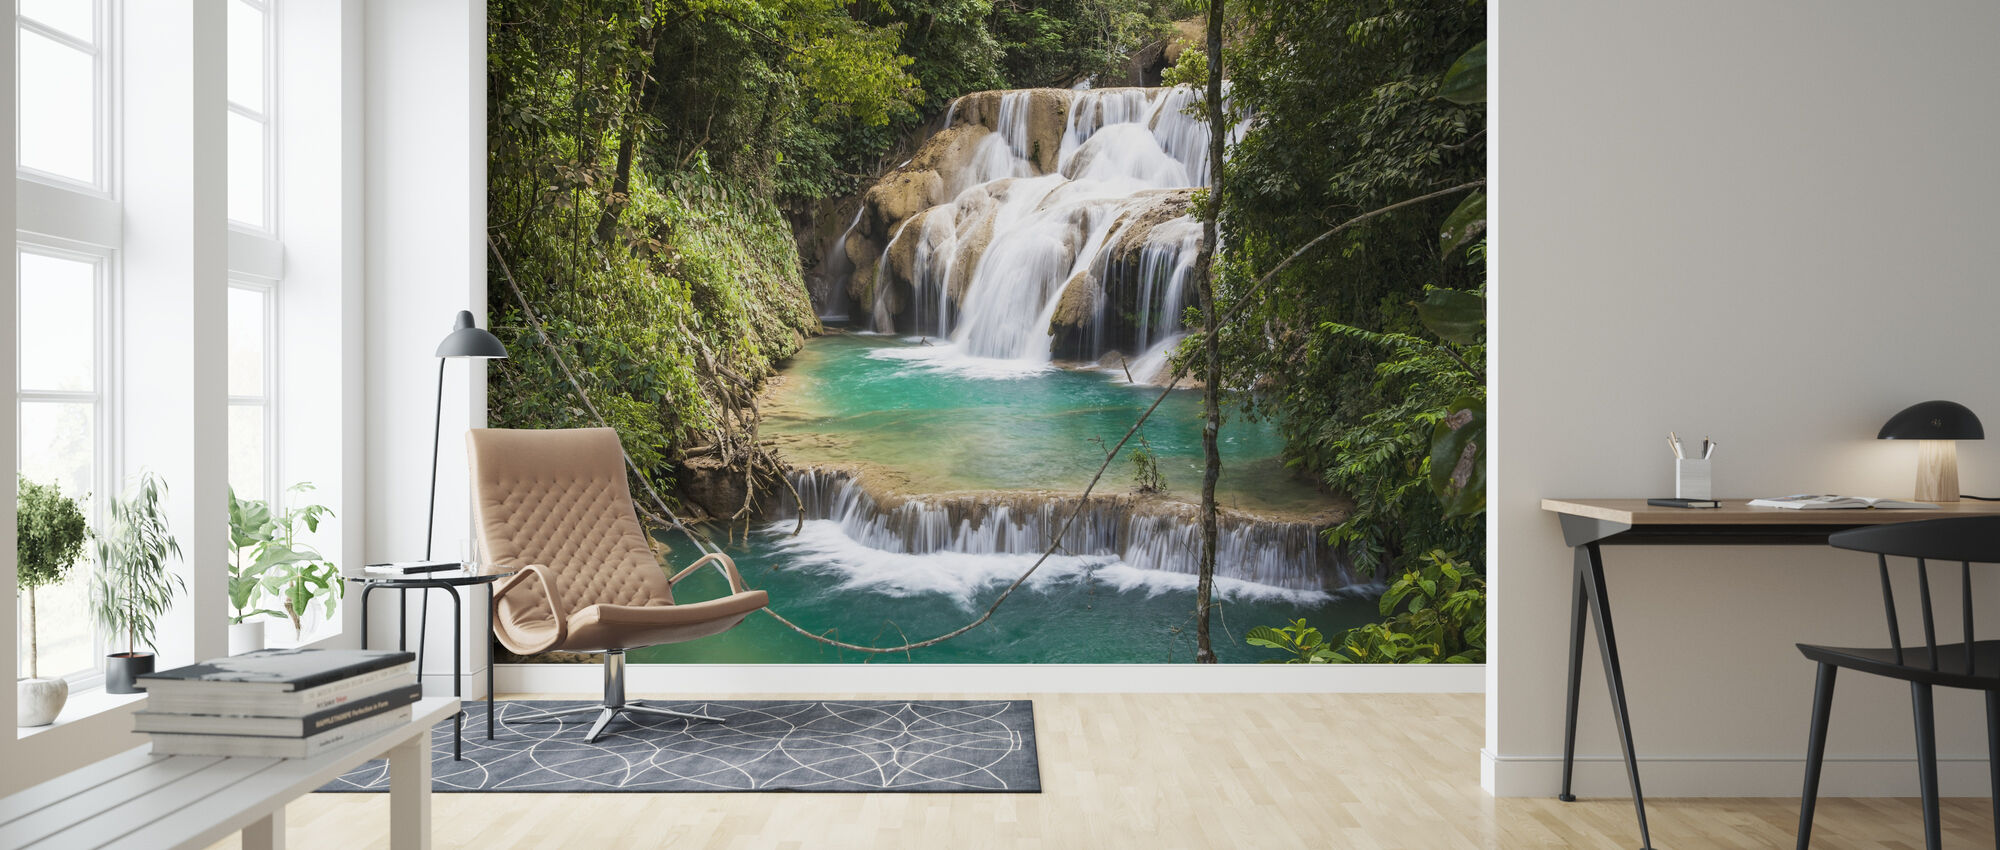 Las Golondrinas Waterfalls - Wallpaper - Living Room